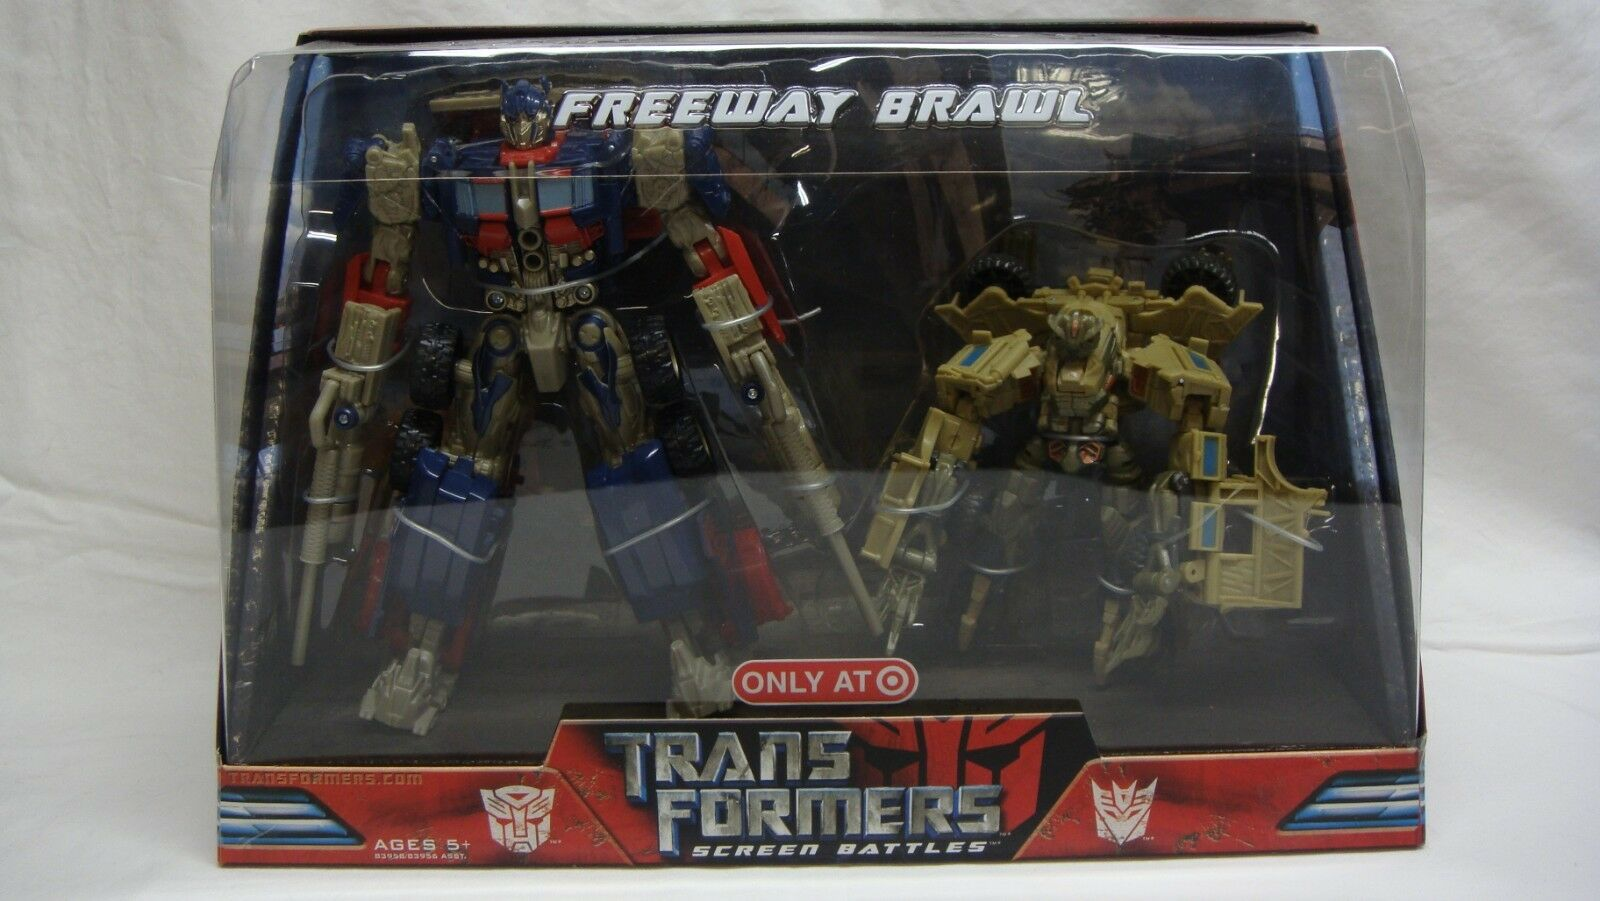 TRANSFORMERS MOVIE BATTLES FREEWAY BRAWL OPTIMUS PRIME BONECRUSHER TARGET NEW